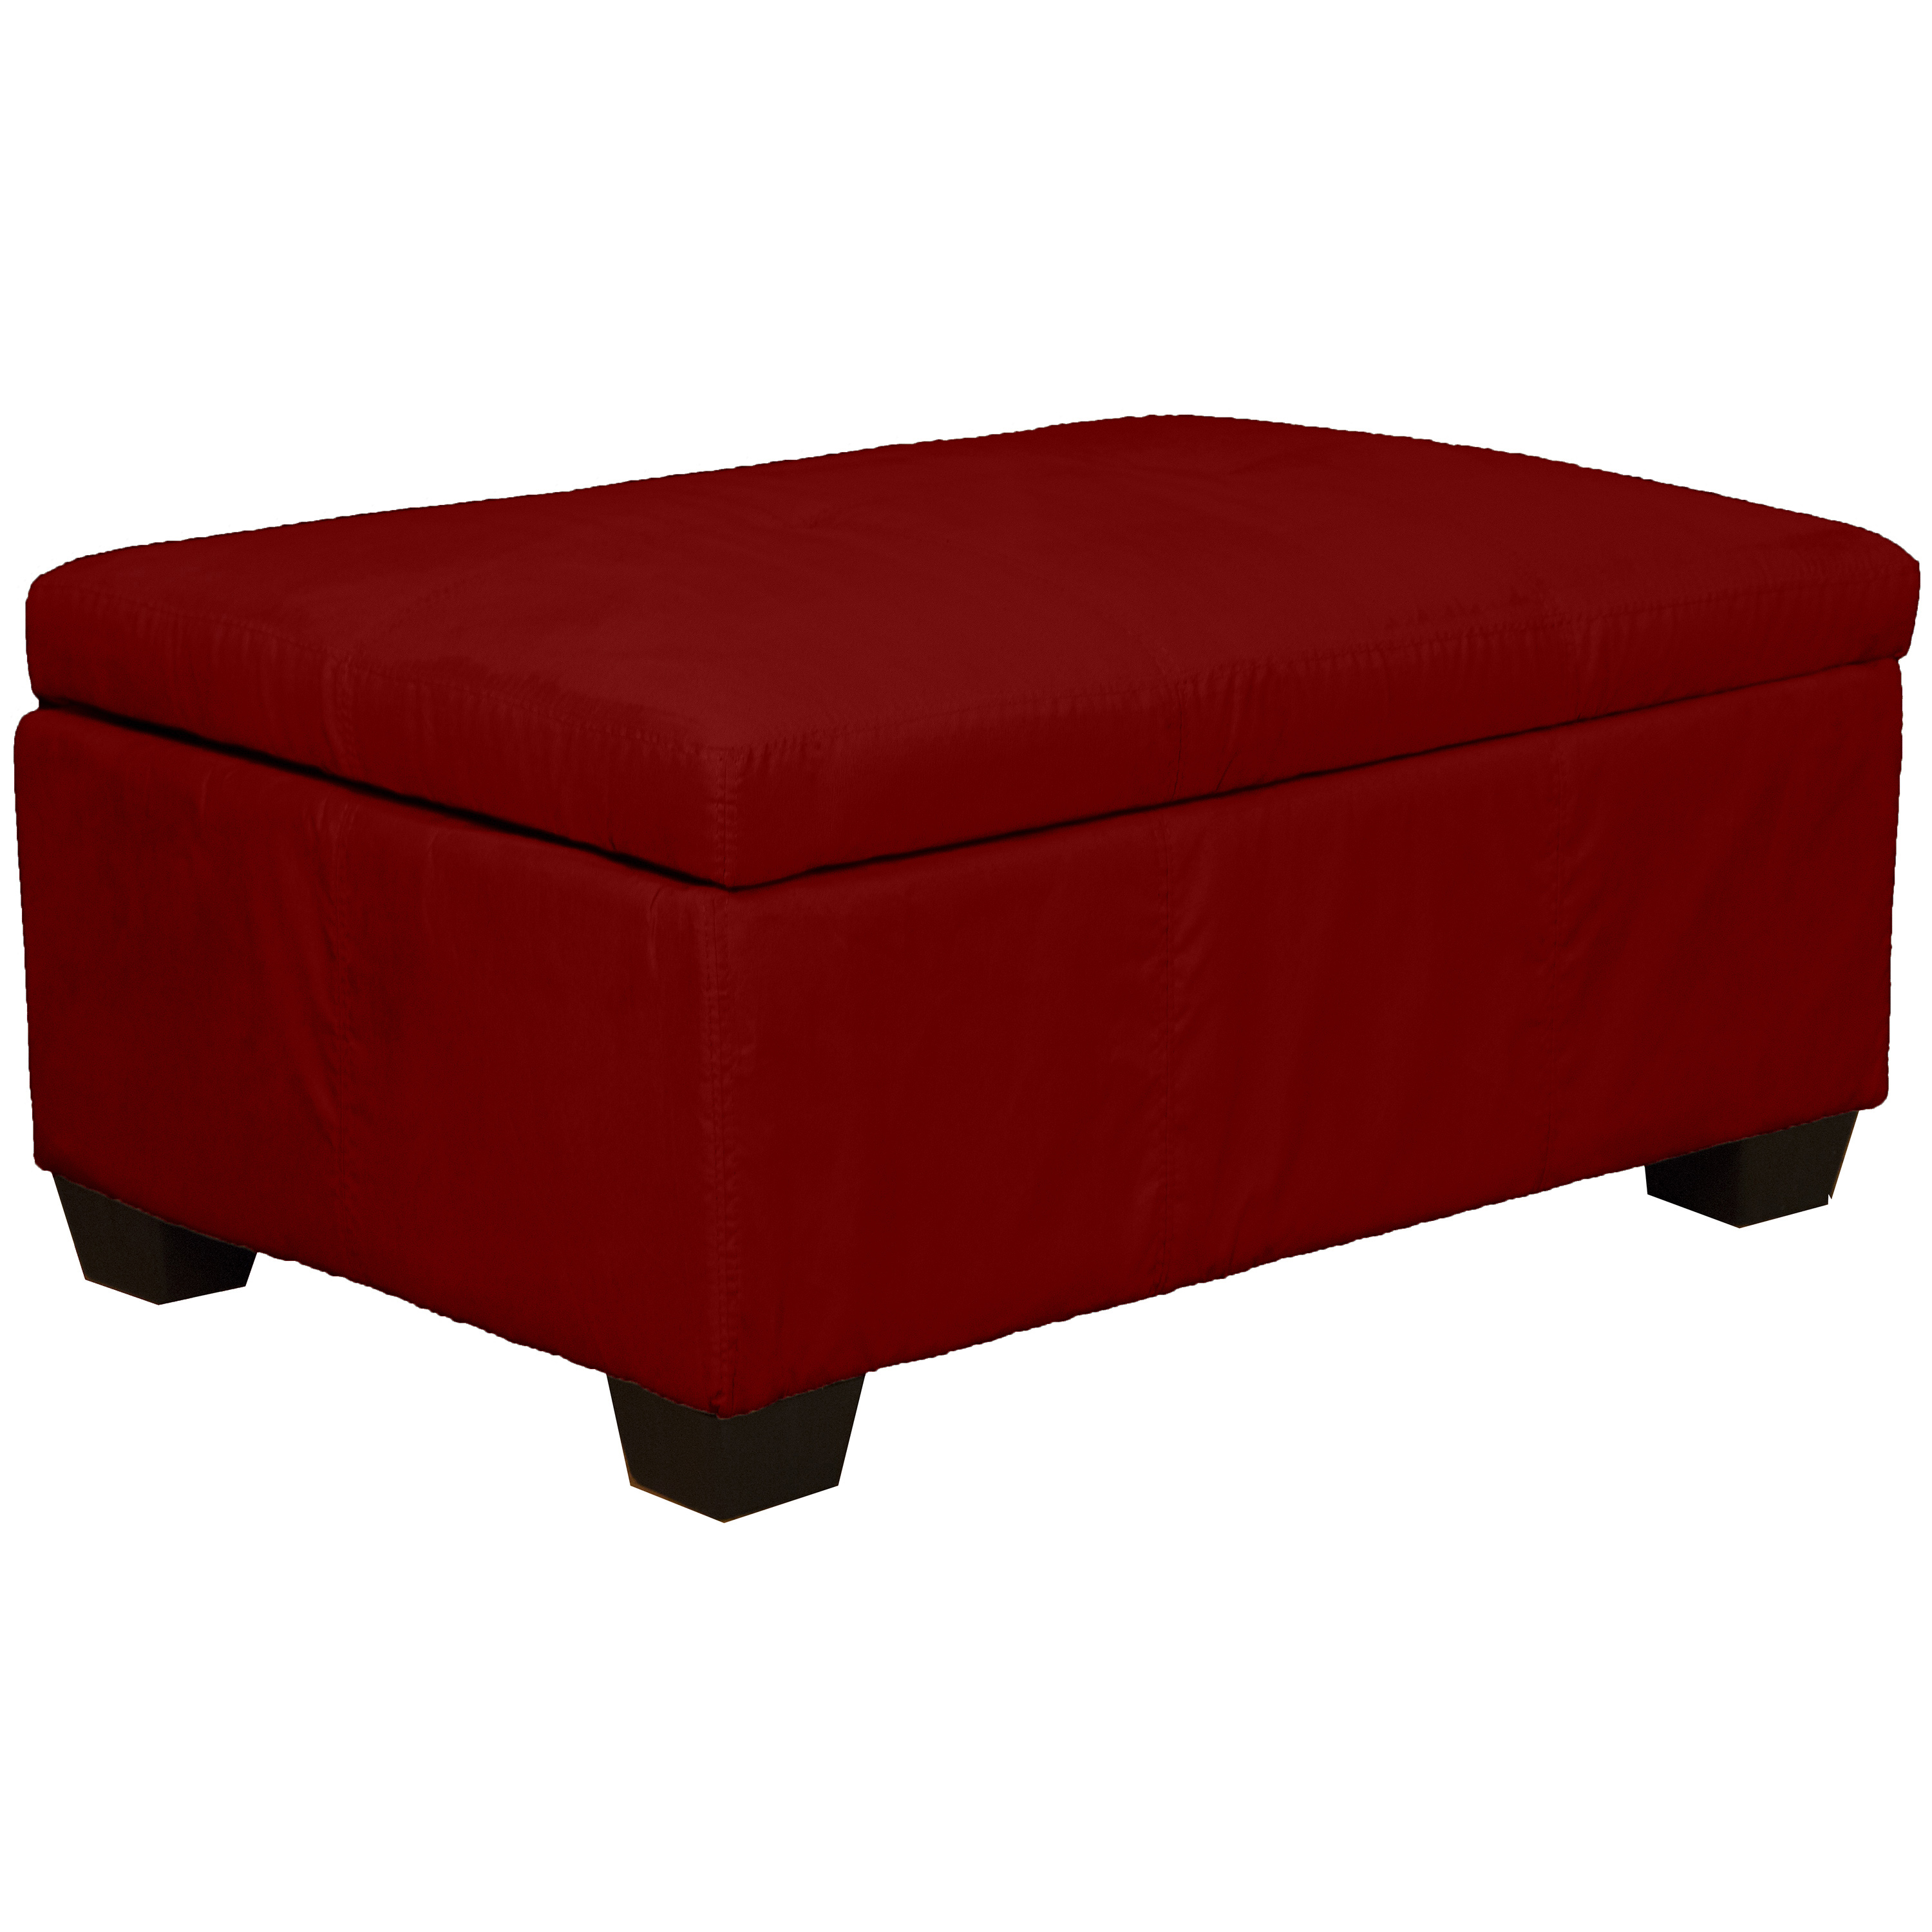 Timeless 36 By 24 By 18 Inch Storage Ottoman Bench Suede